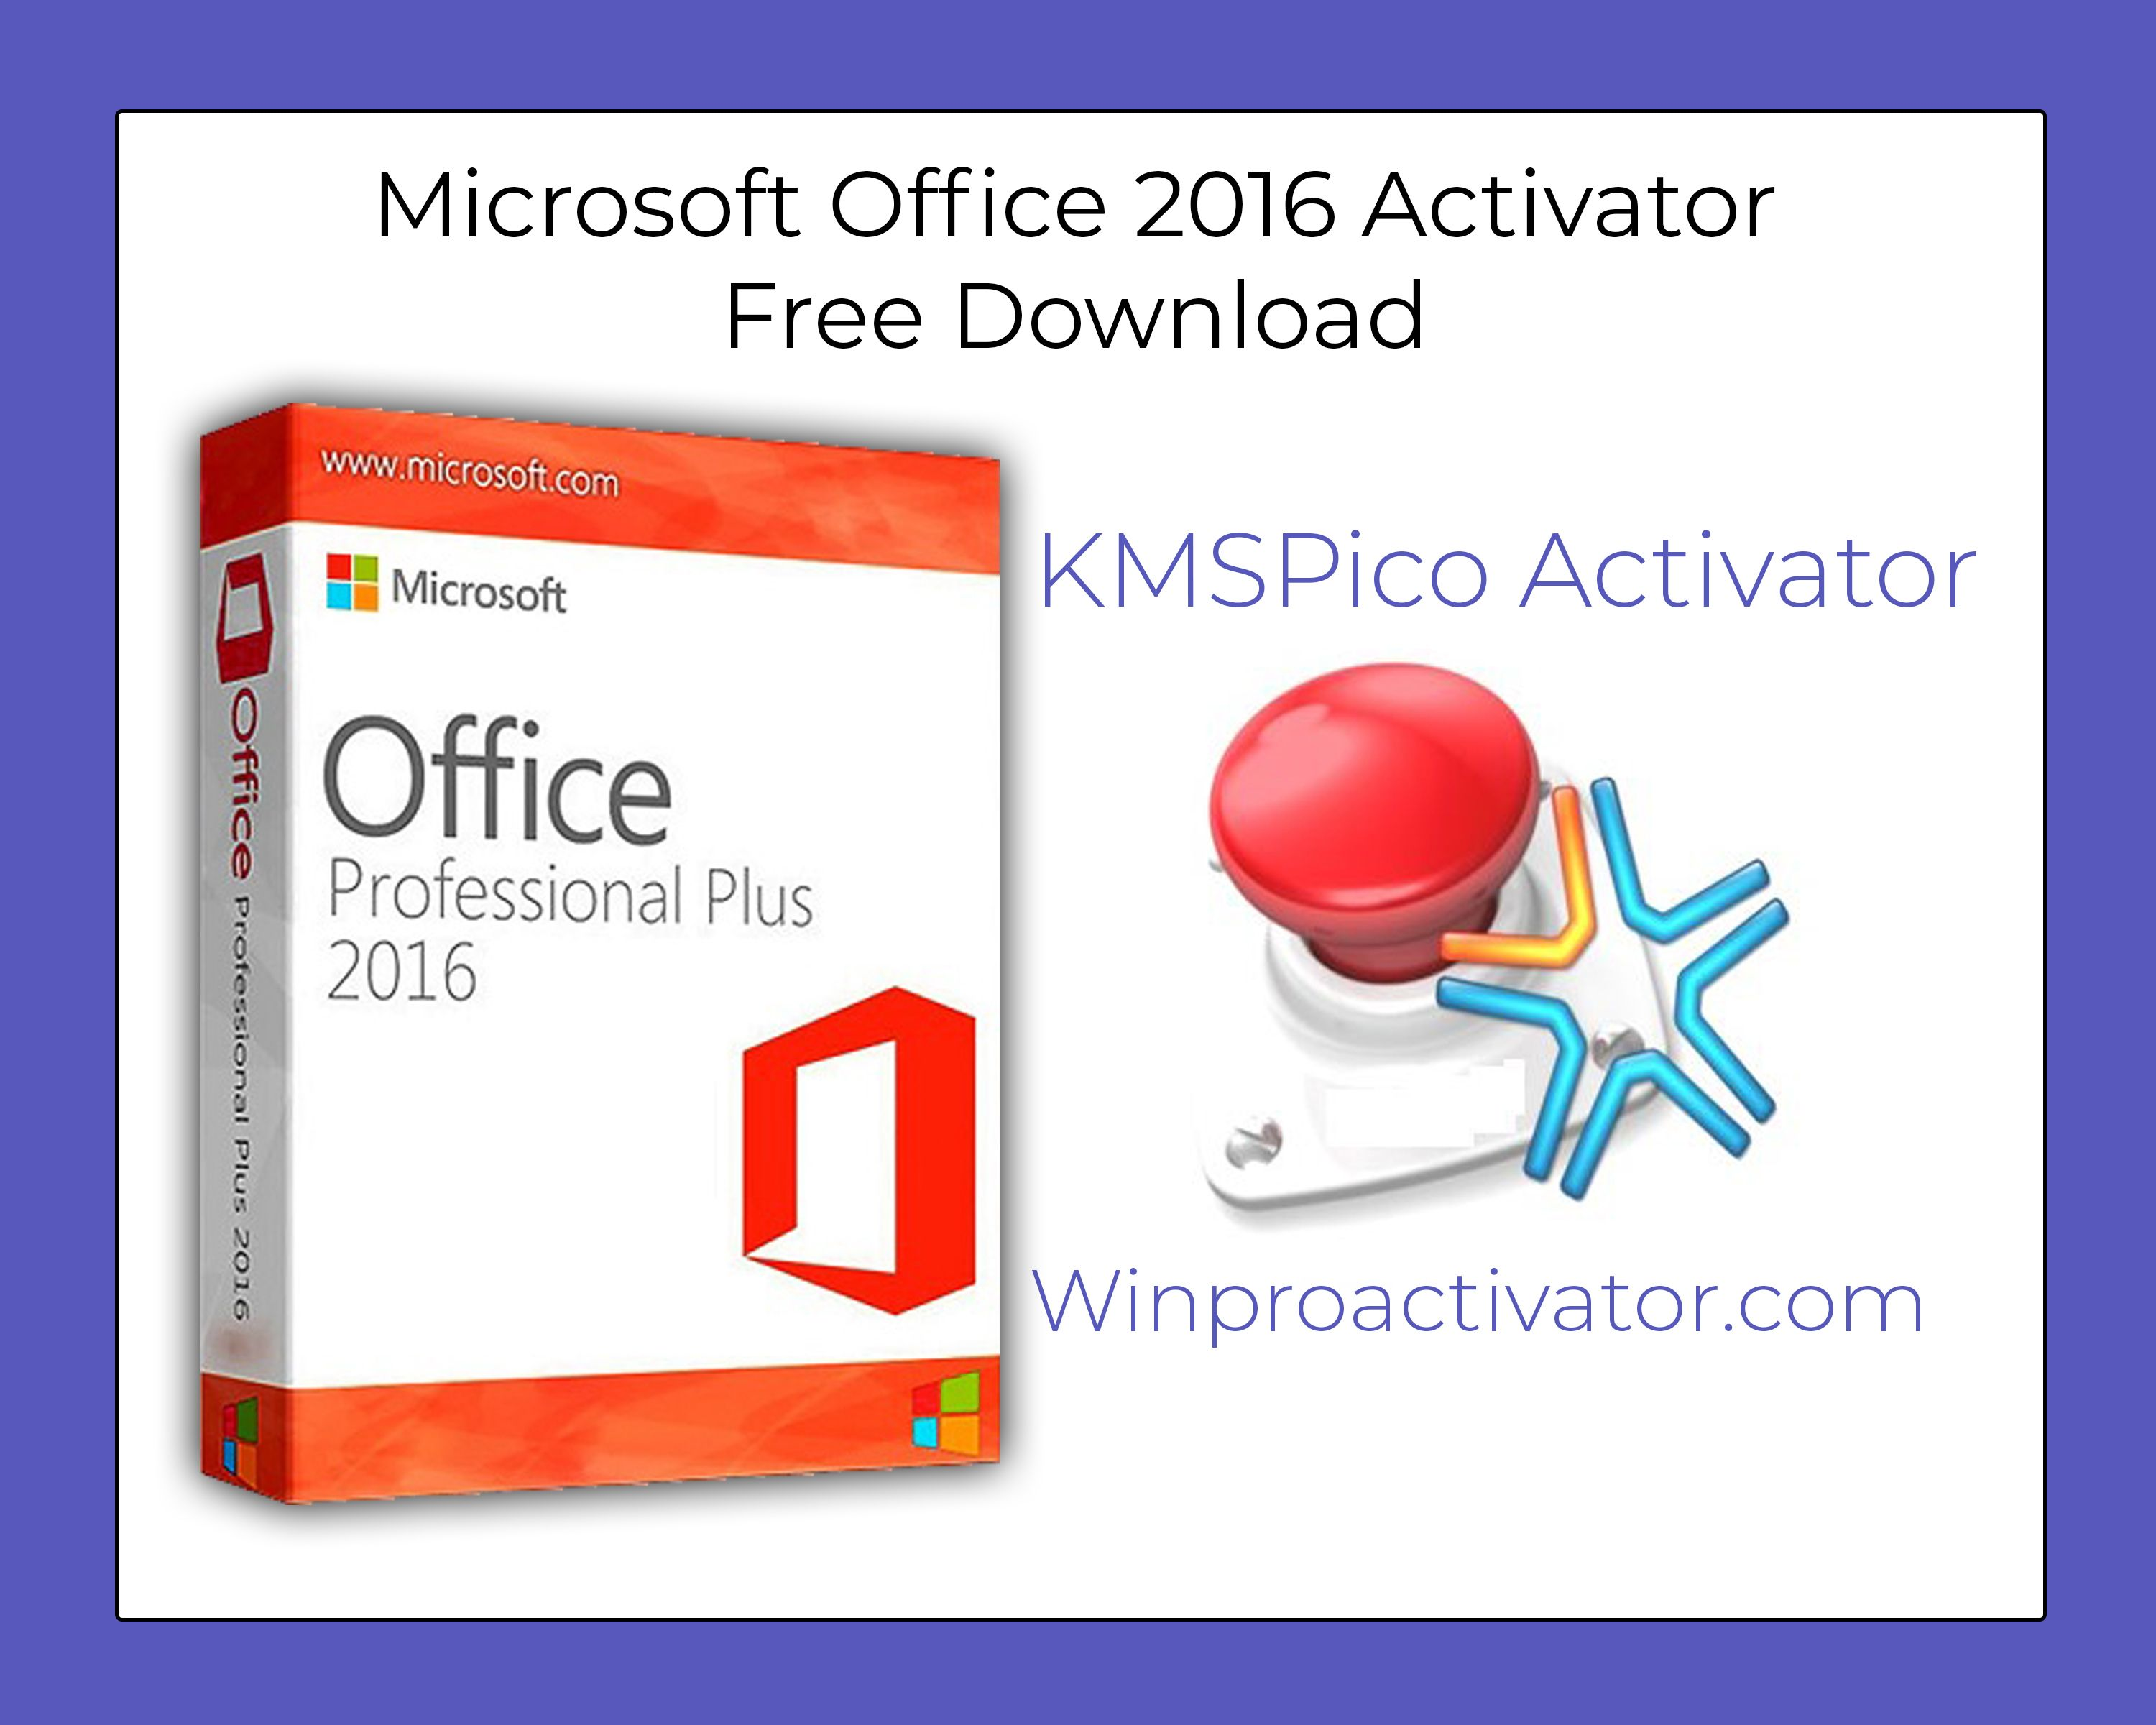 a2af5a4b21819c8adae0a07a1a0f8f17 - How To Get Microsoft Office 2016 For Free Windows 10